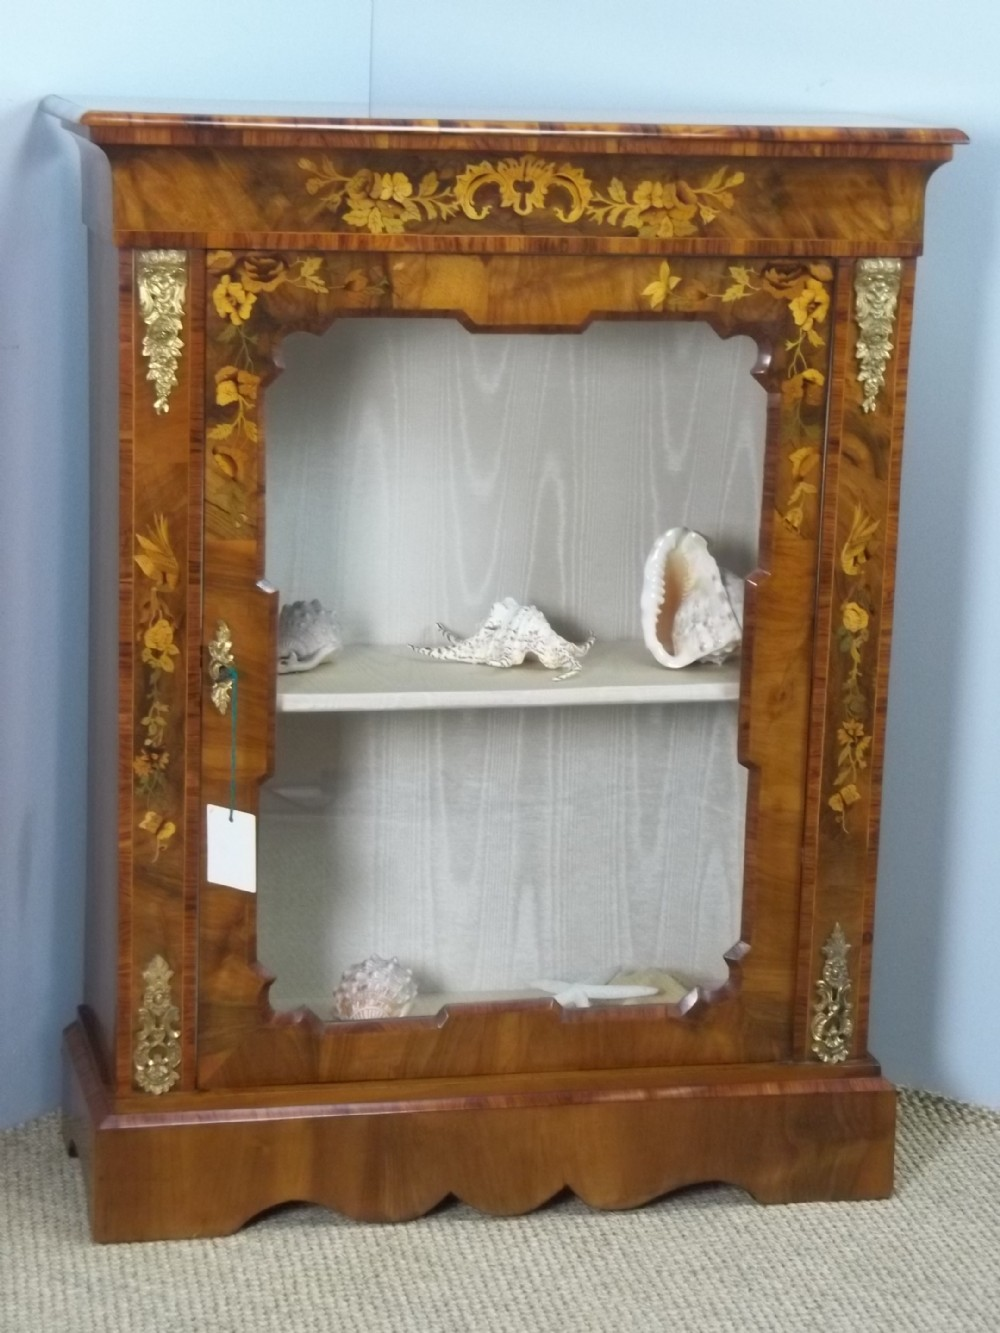 antique 19th century victorian walnut marquetry satinwood inlaid pier console vitrine display side narrow cabinet collectors credenza with gilt bronze mounts c1860